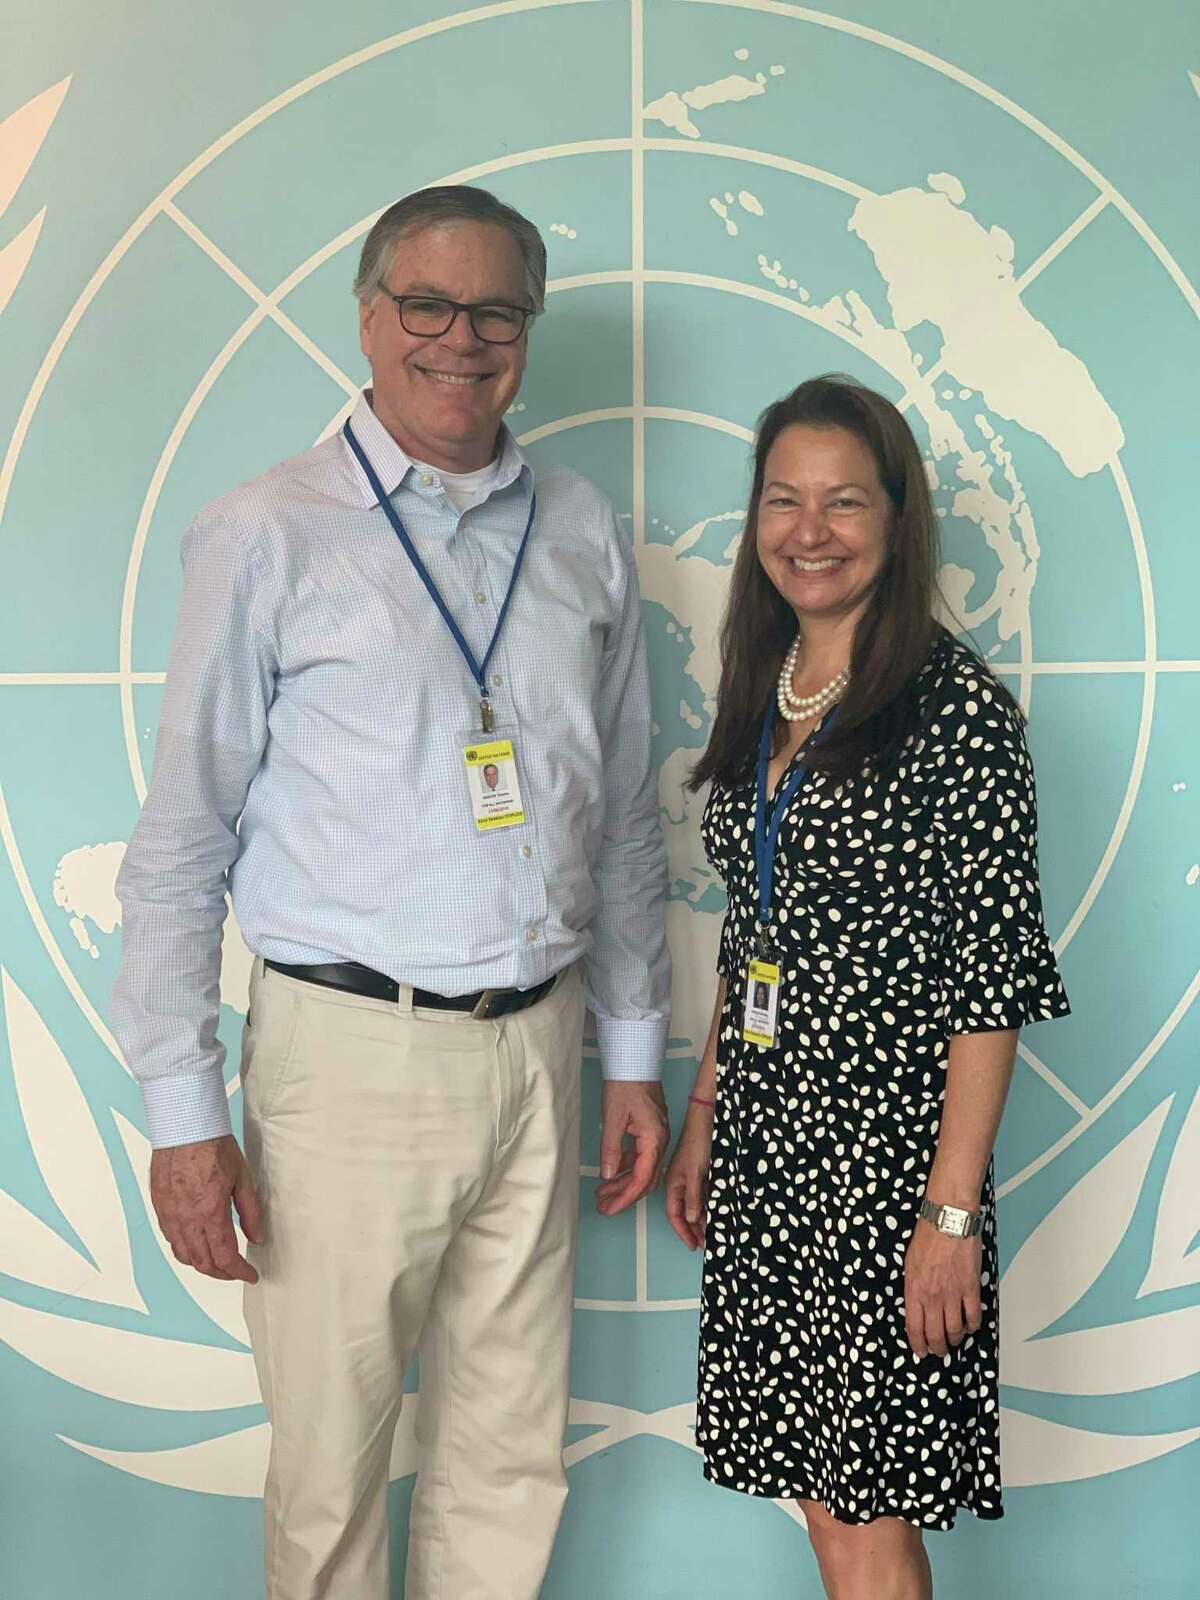 Tim and Michelle Hanlon, of New Canaan, established For All Moonkind to protect historic lunar exploration sites on the Moon. Their organization has been granted observer status by the United Nations.